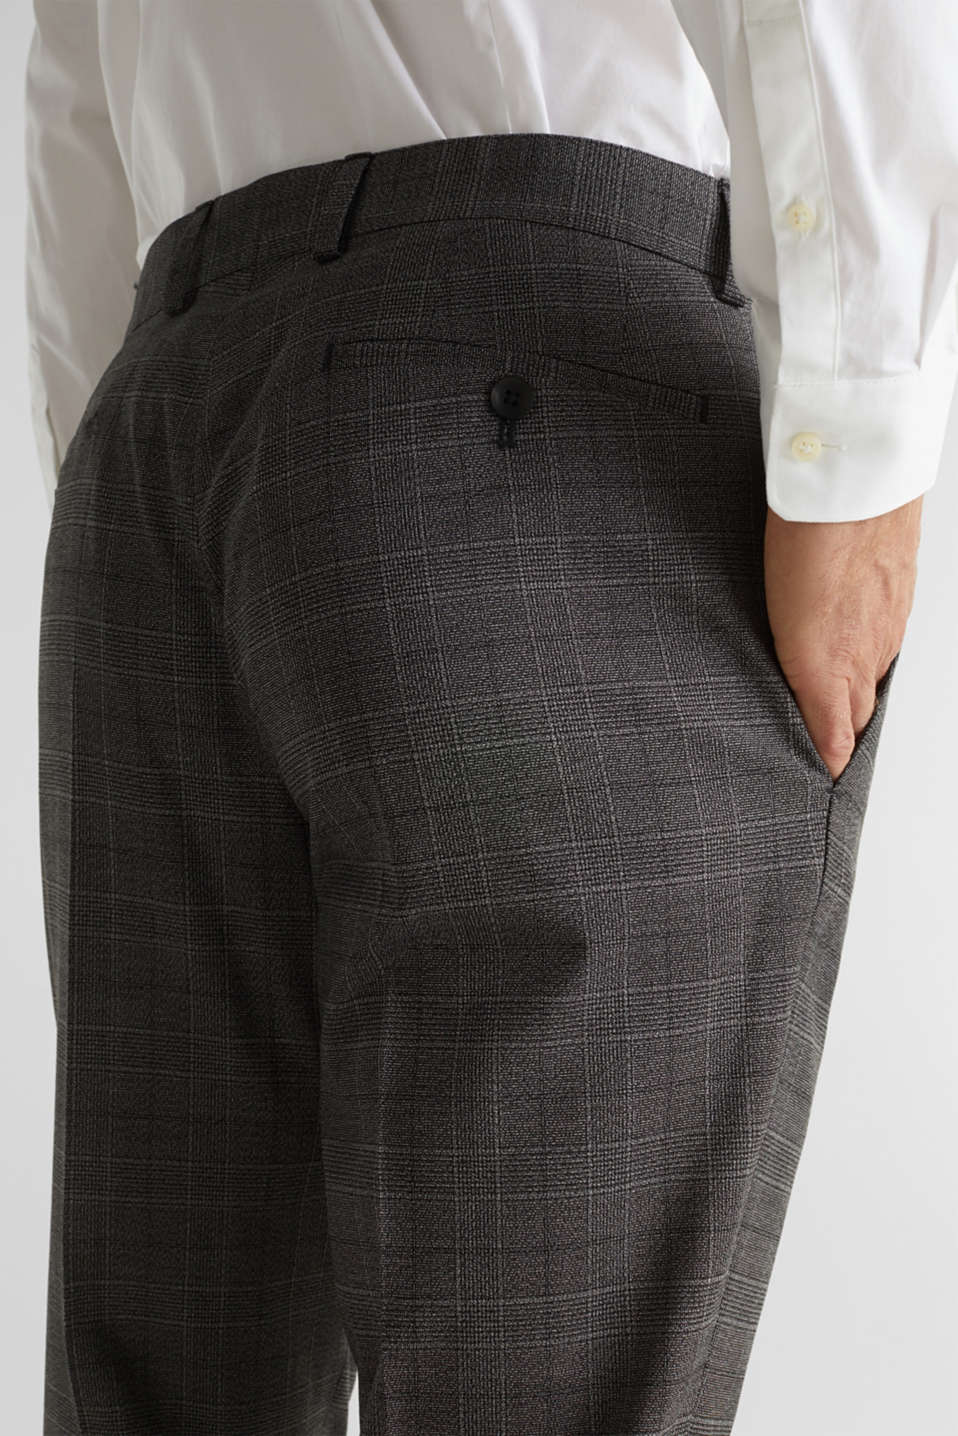 GLENCHECK mix + match: Trousers with Prince of Wales check pattern, DARK GREY 3, detail image number 3